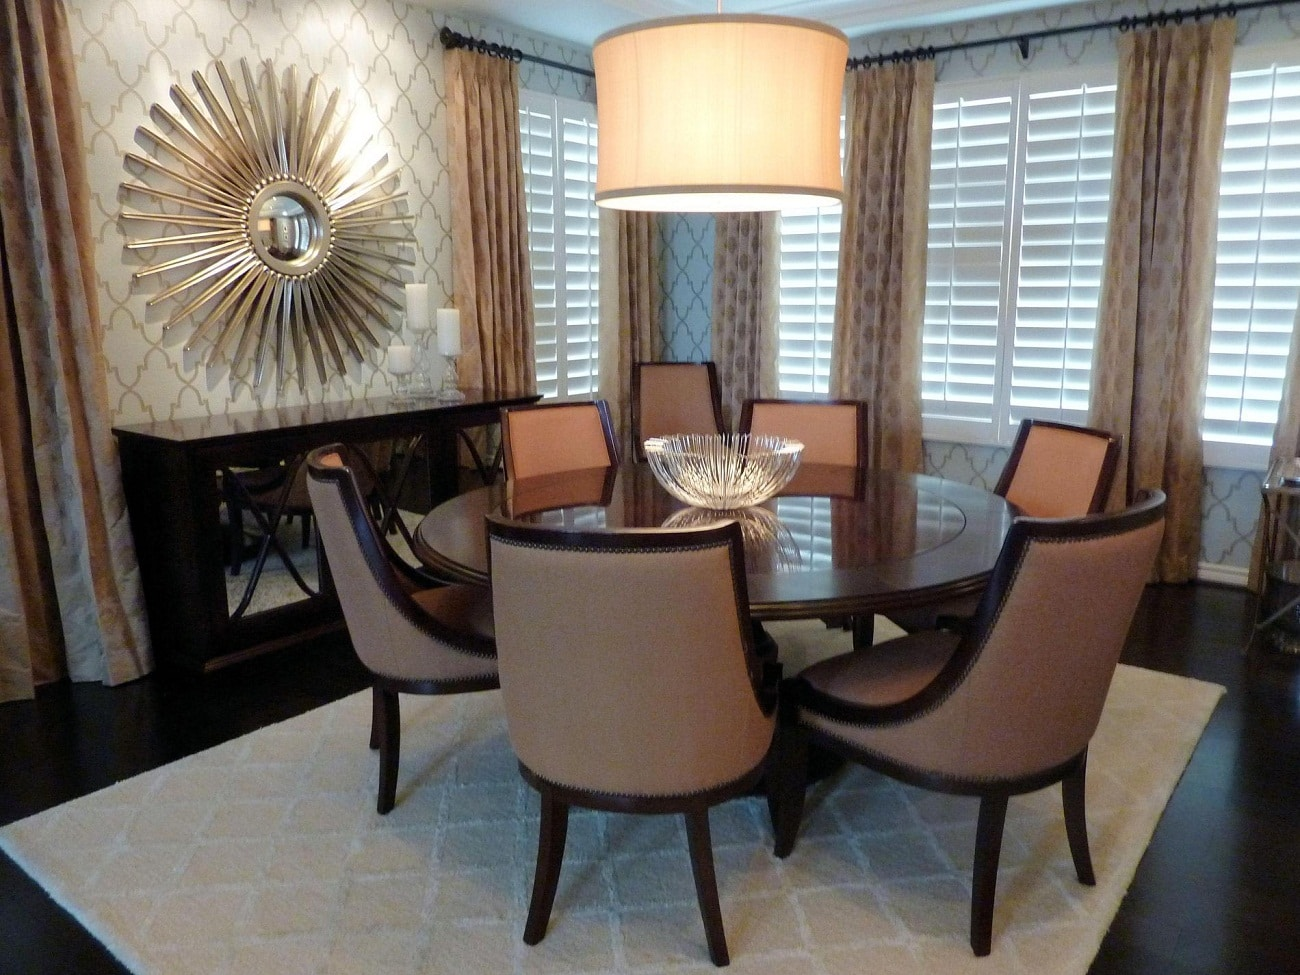 Home decor dining room ideas living room decor ideas for Small dining room decorating ideas